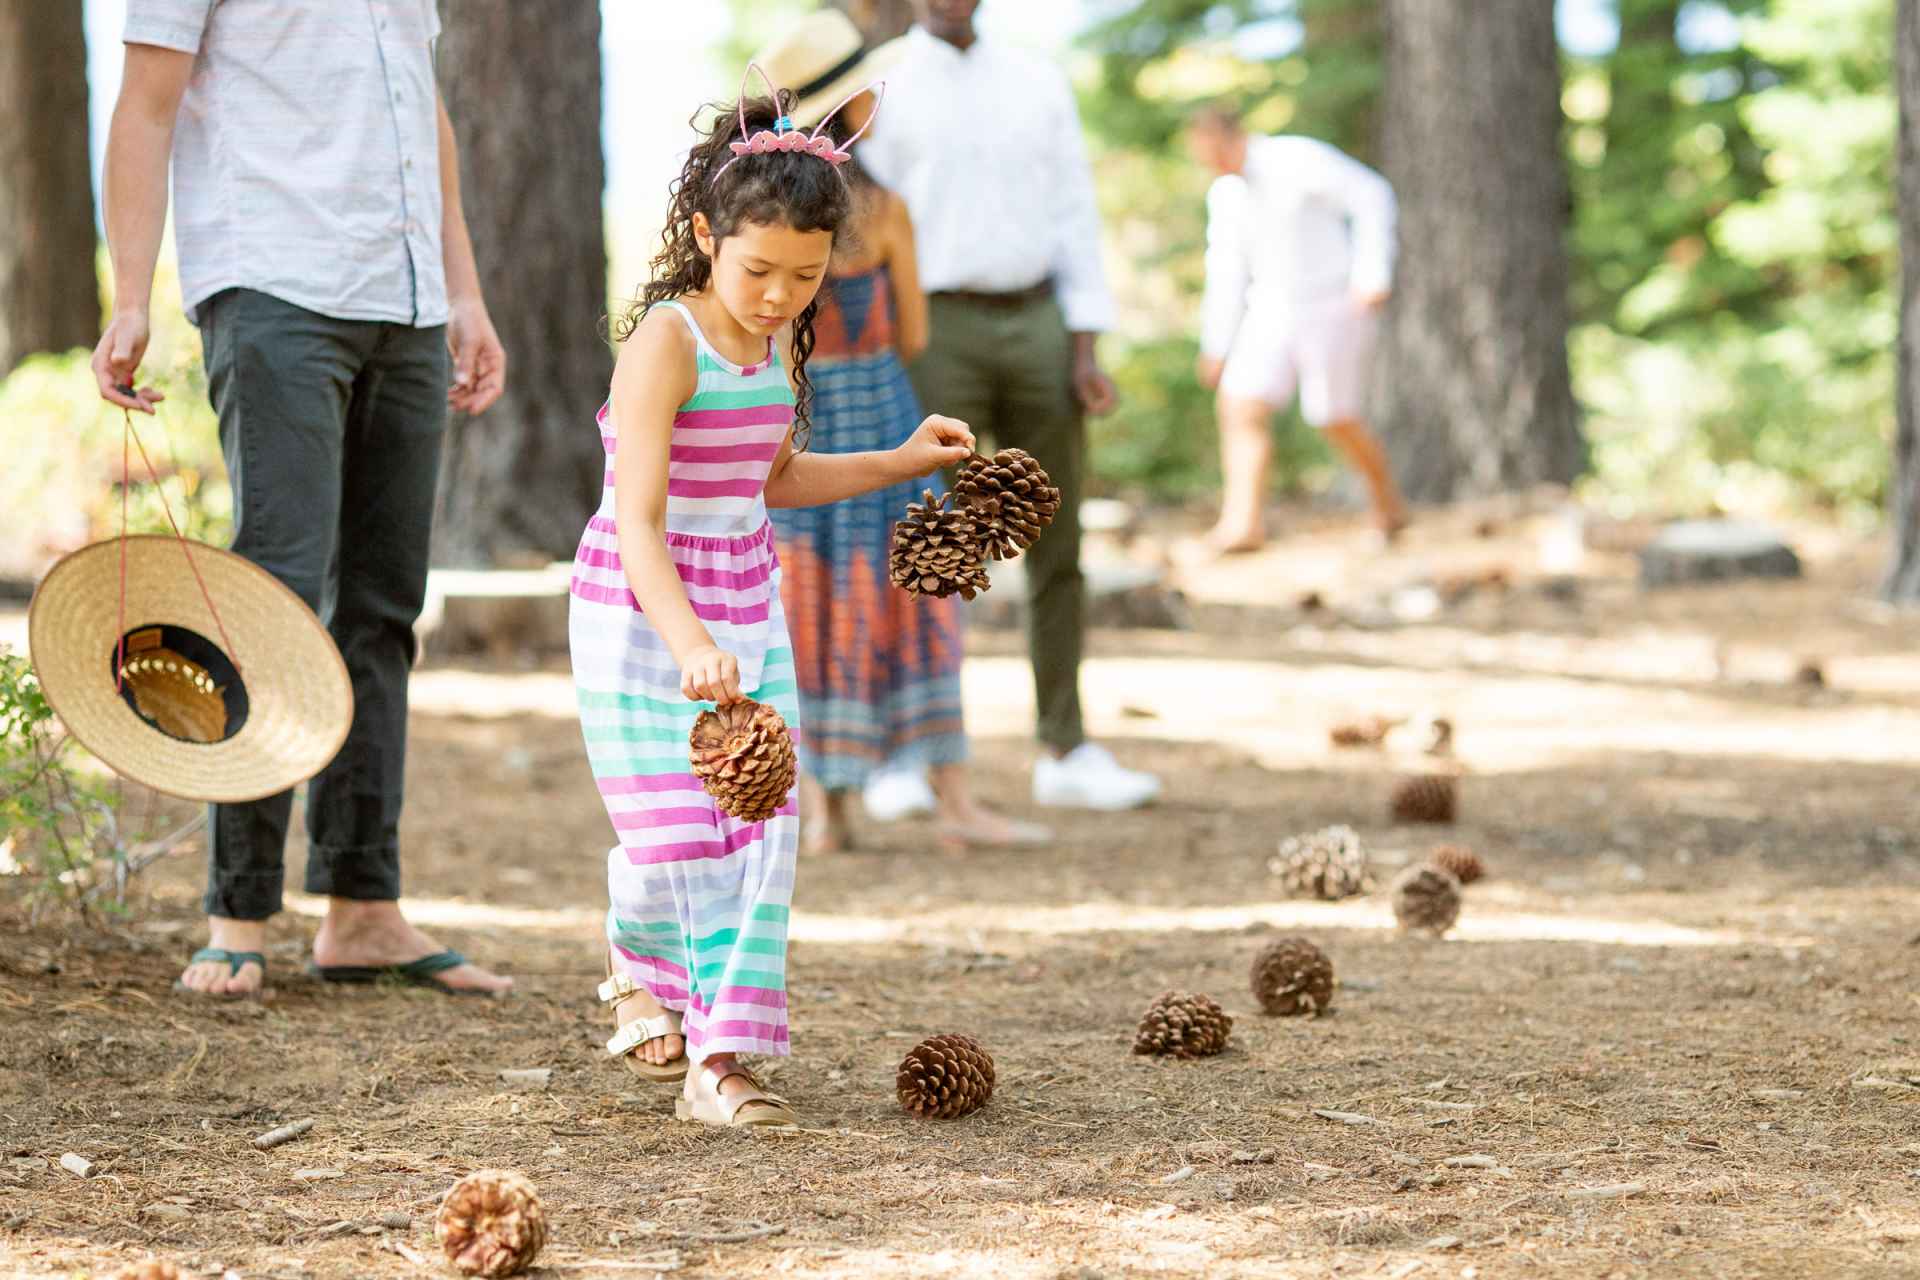 Tahoe Wedding Photography from Outdoors at Skylandia Park   The kids gathered pine cones to create a pathway for the bride to walk down